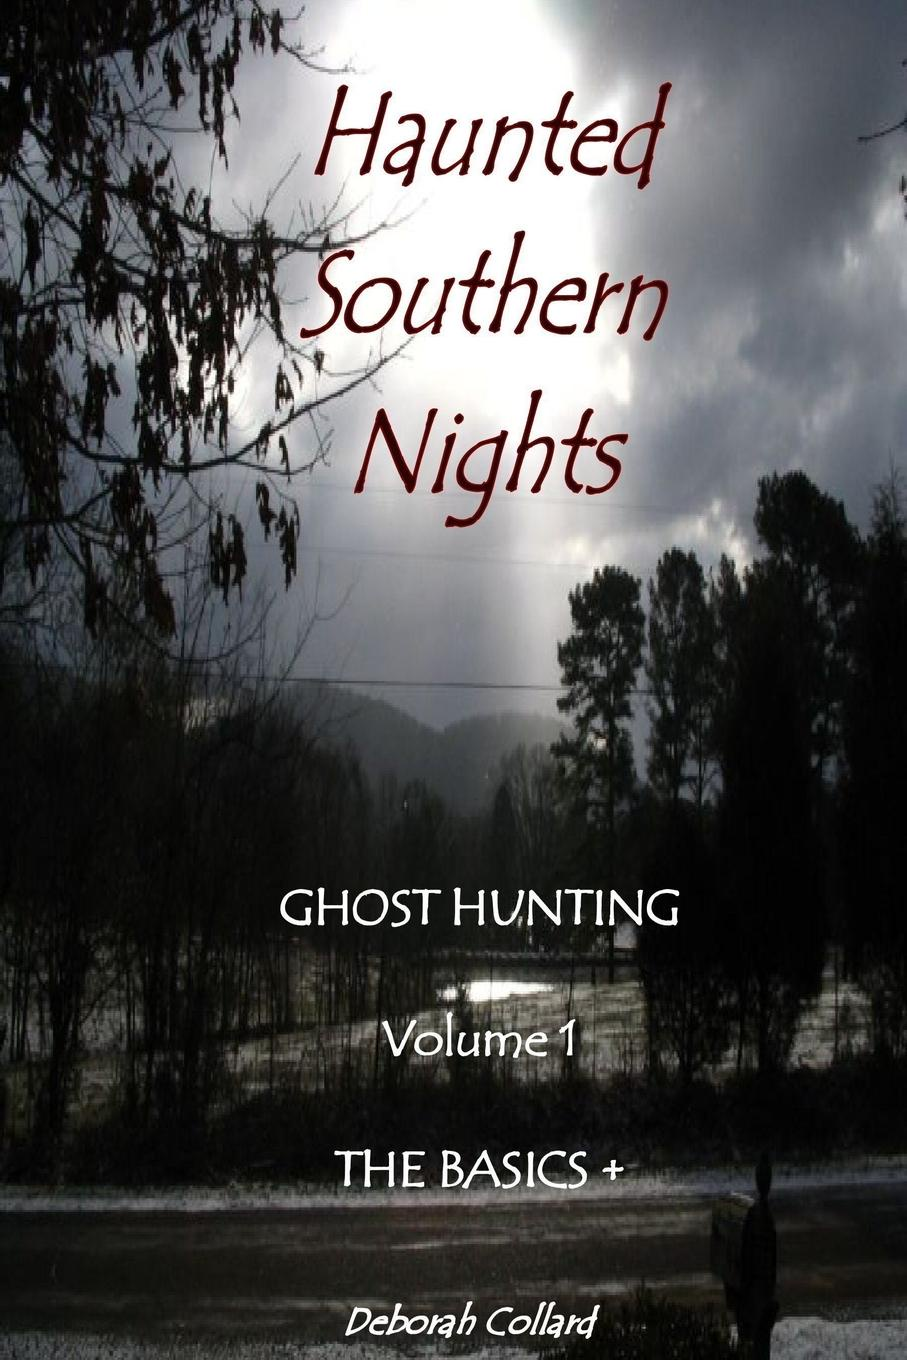 Deborah Collard Haunted Southern Nights Vol. 1 Ghost Hunting, the Basics . deborah morse denenholz a companion to the brontes